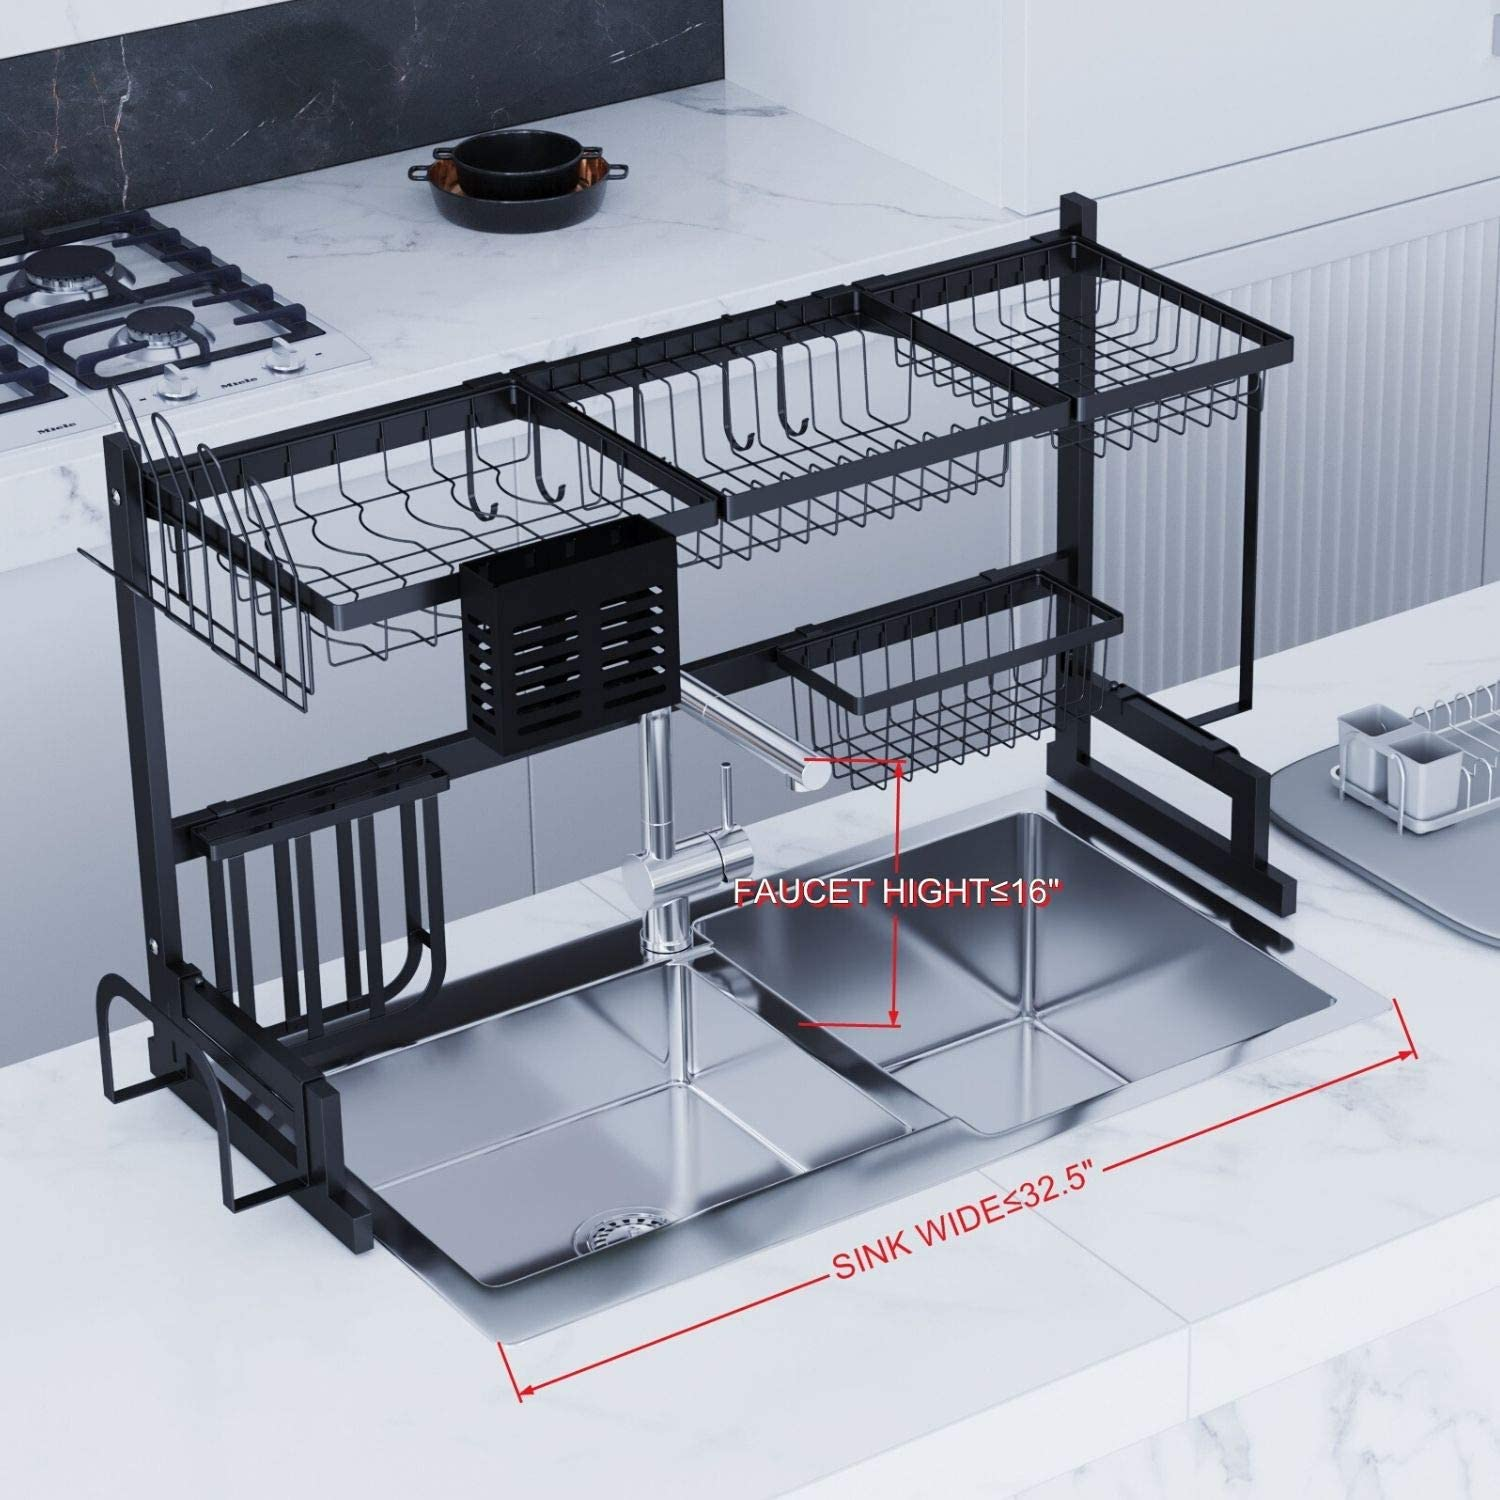 TK191001 TOOLKISS Stainless Steel Over-The-Sink Dish Drying Rack,Drainer Shelf for Kitchen Countertop Organizer Saving Space Dish Rack with Utensil Holder Black